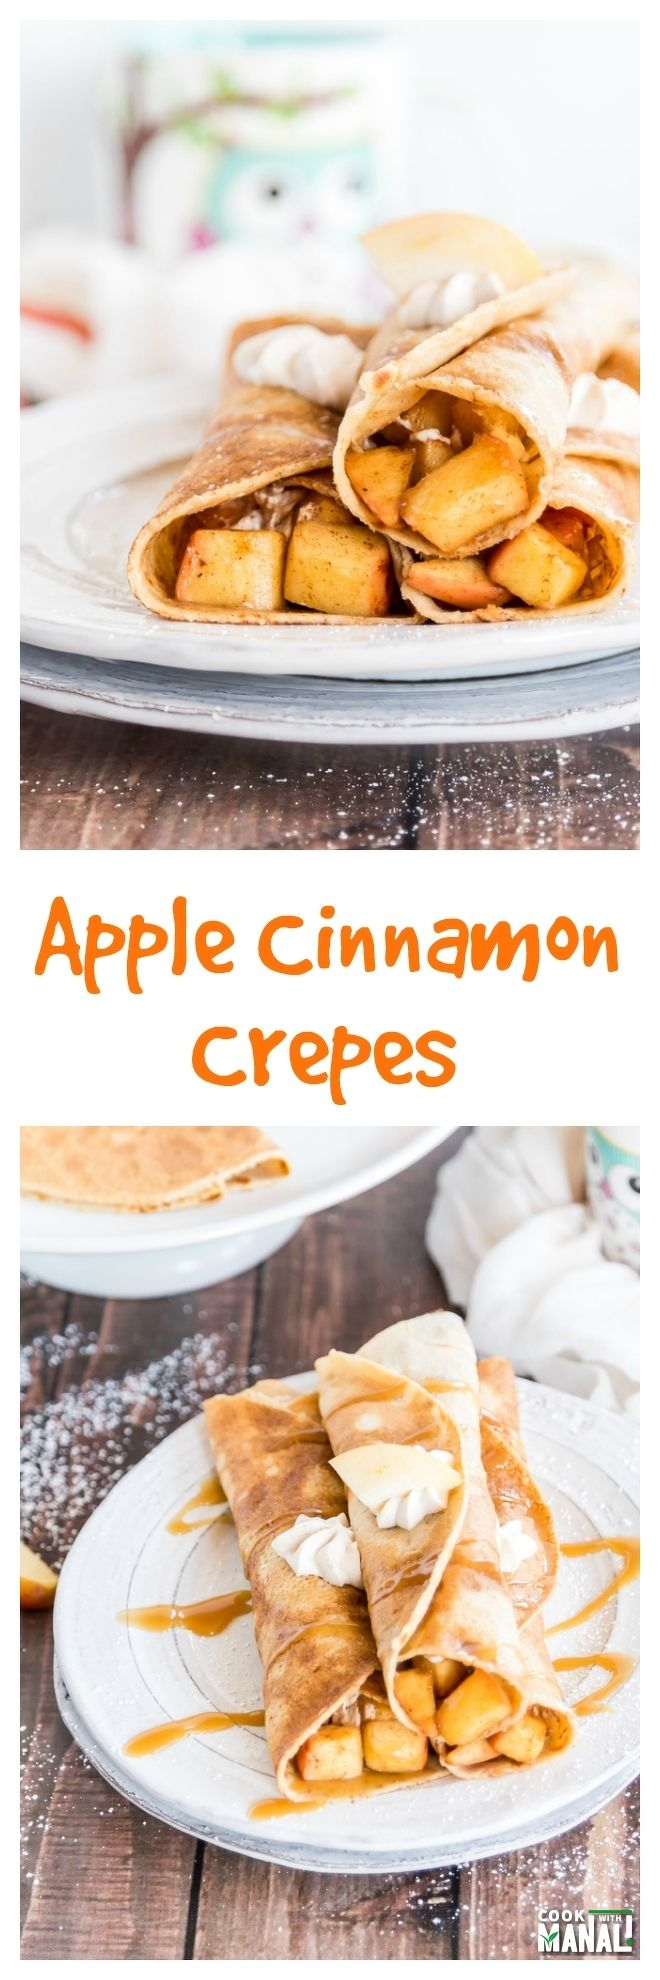 Apple Cinnamon Crepes Collage